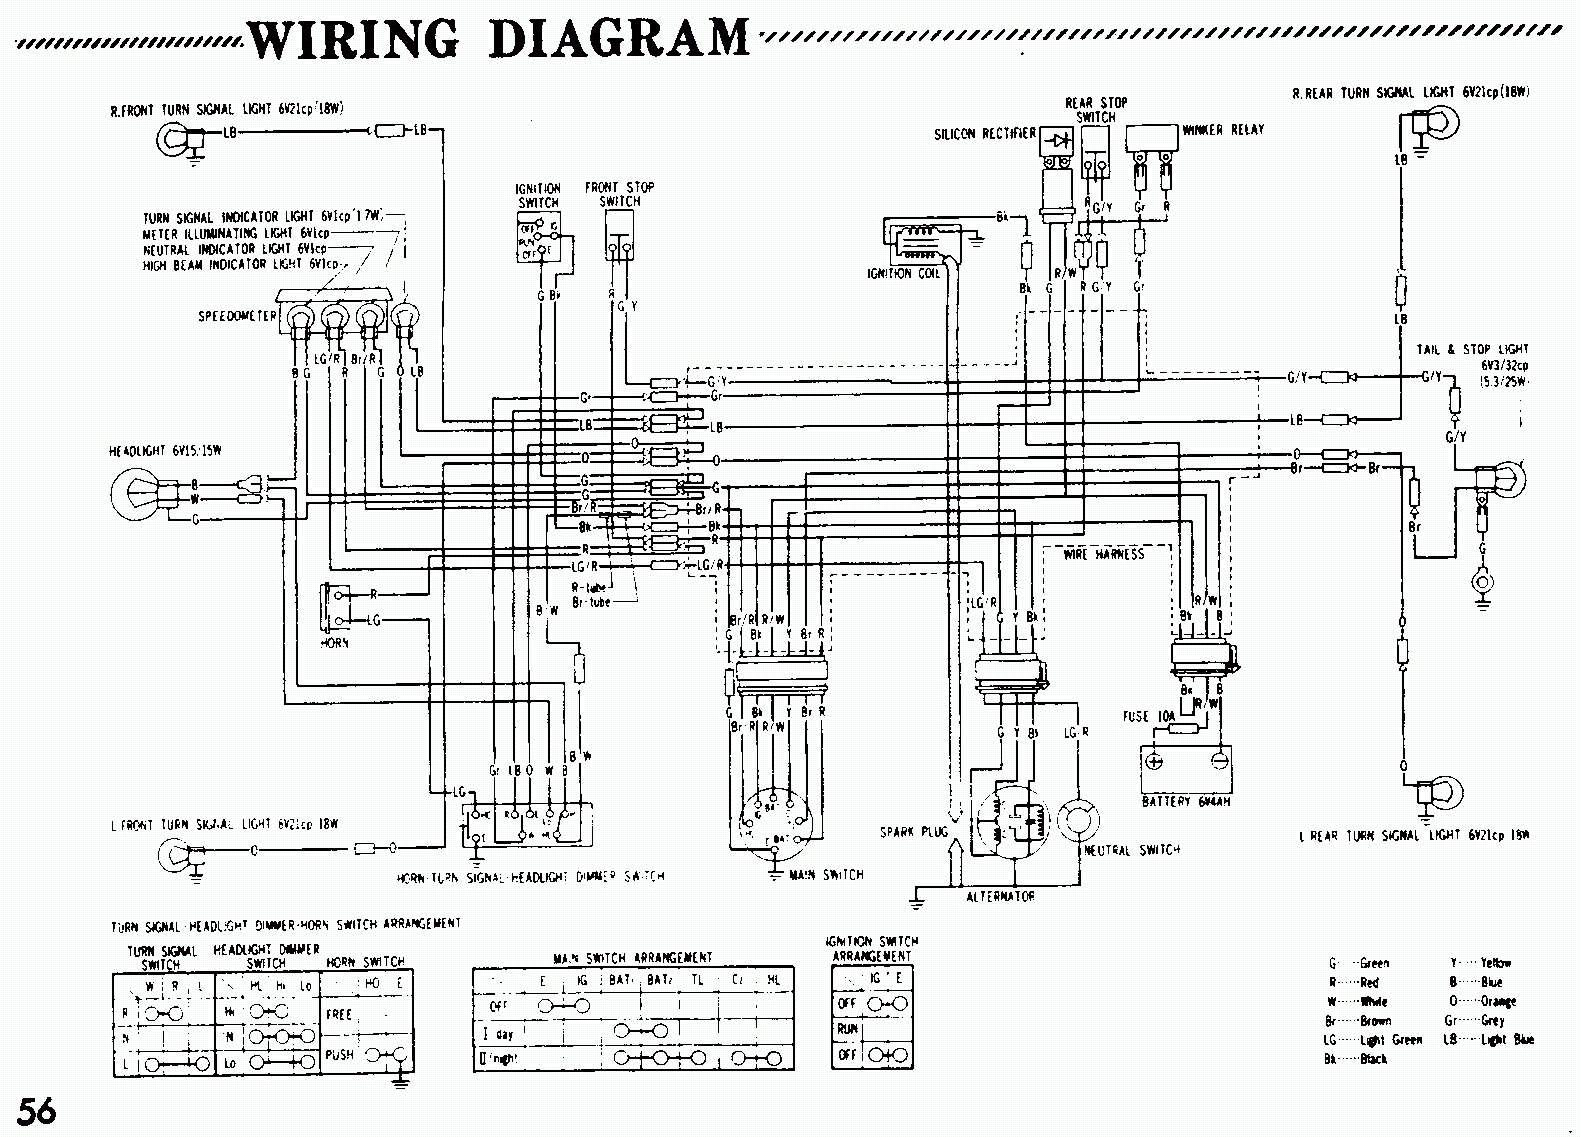 1977 honda ct70 wiring diagram blog wiring diagram Engine Honda CT70H honda xr75 wiring wiring diagram mini atv wiring diagram 1977 honda ct70 wiring diagram